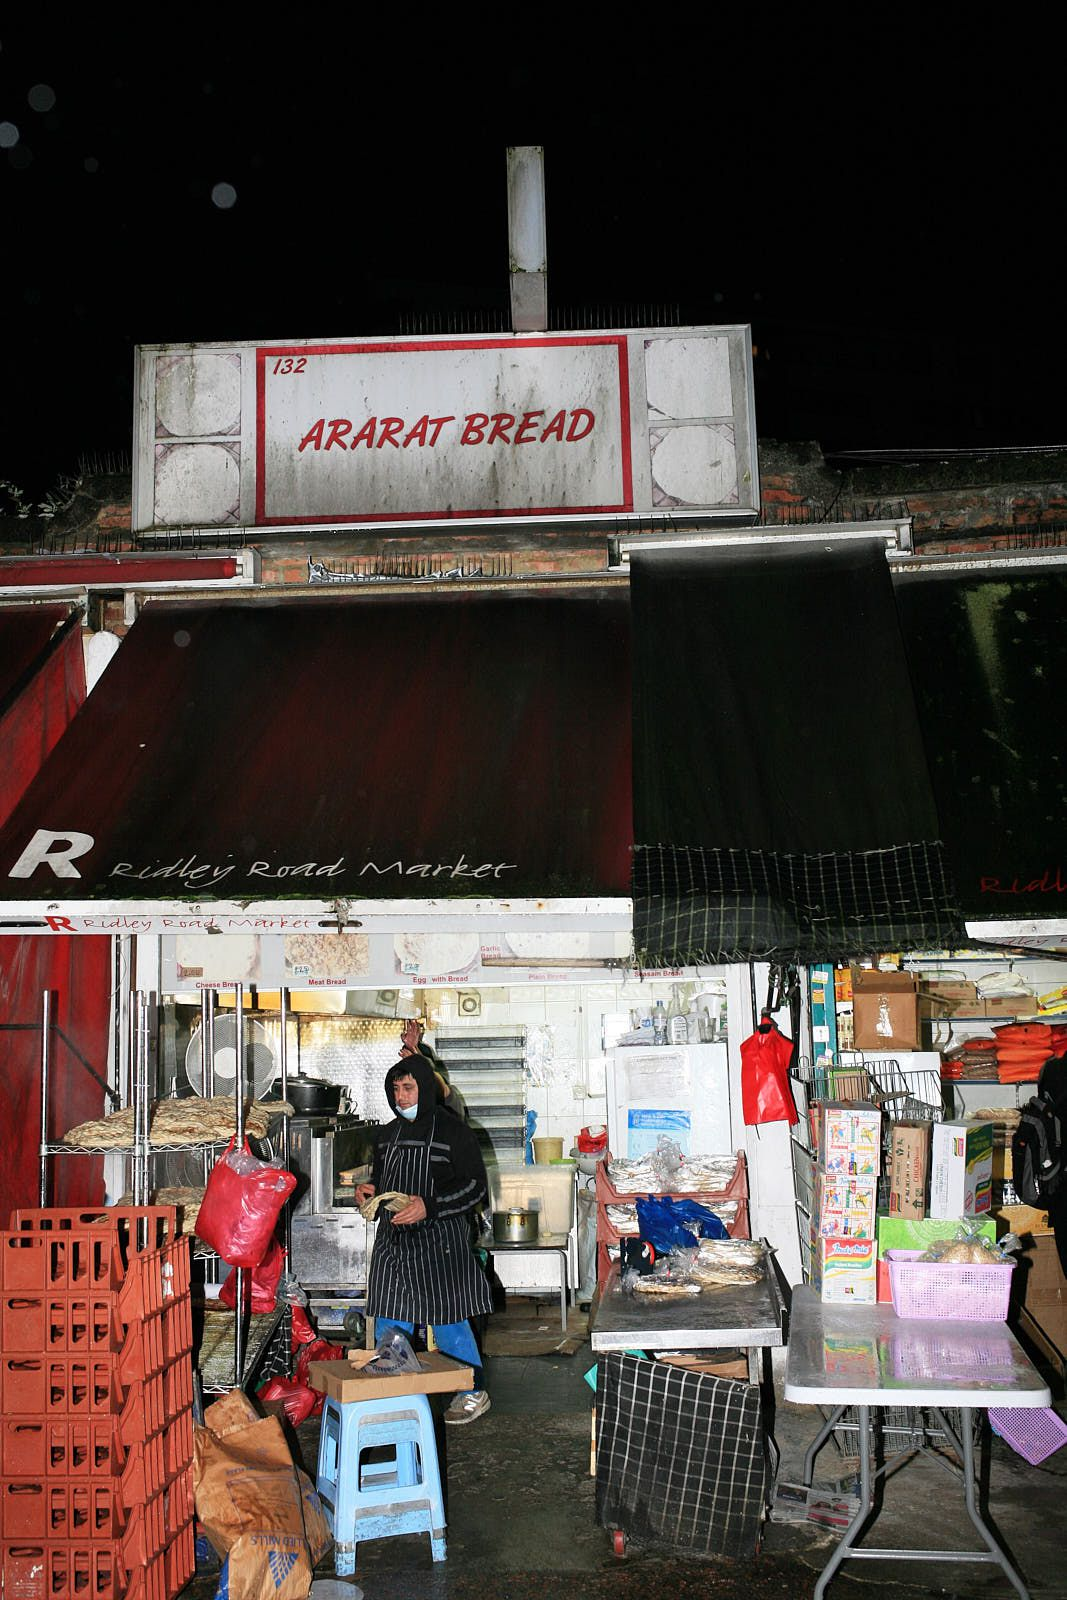 Ararat Bread on Ridley Road market, one of London's most well-known and much loved naan purveyors